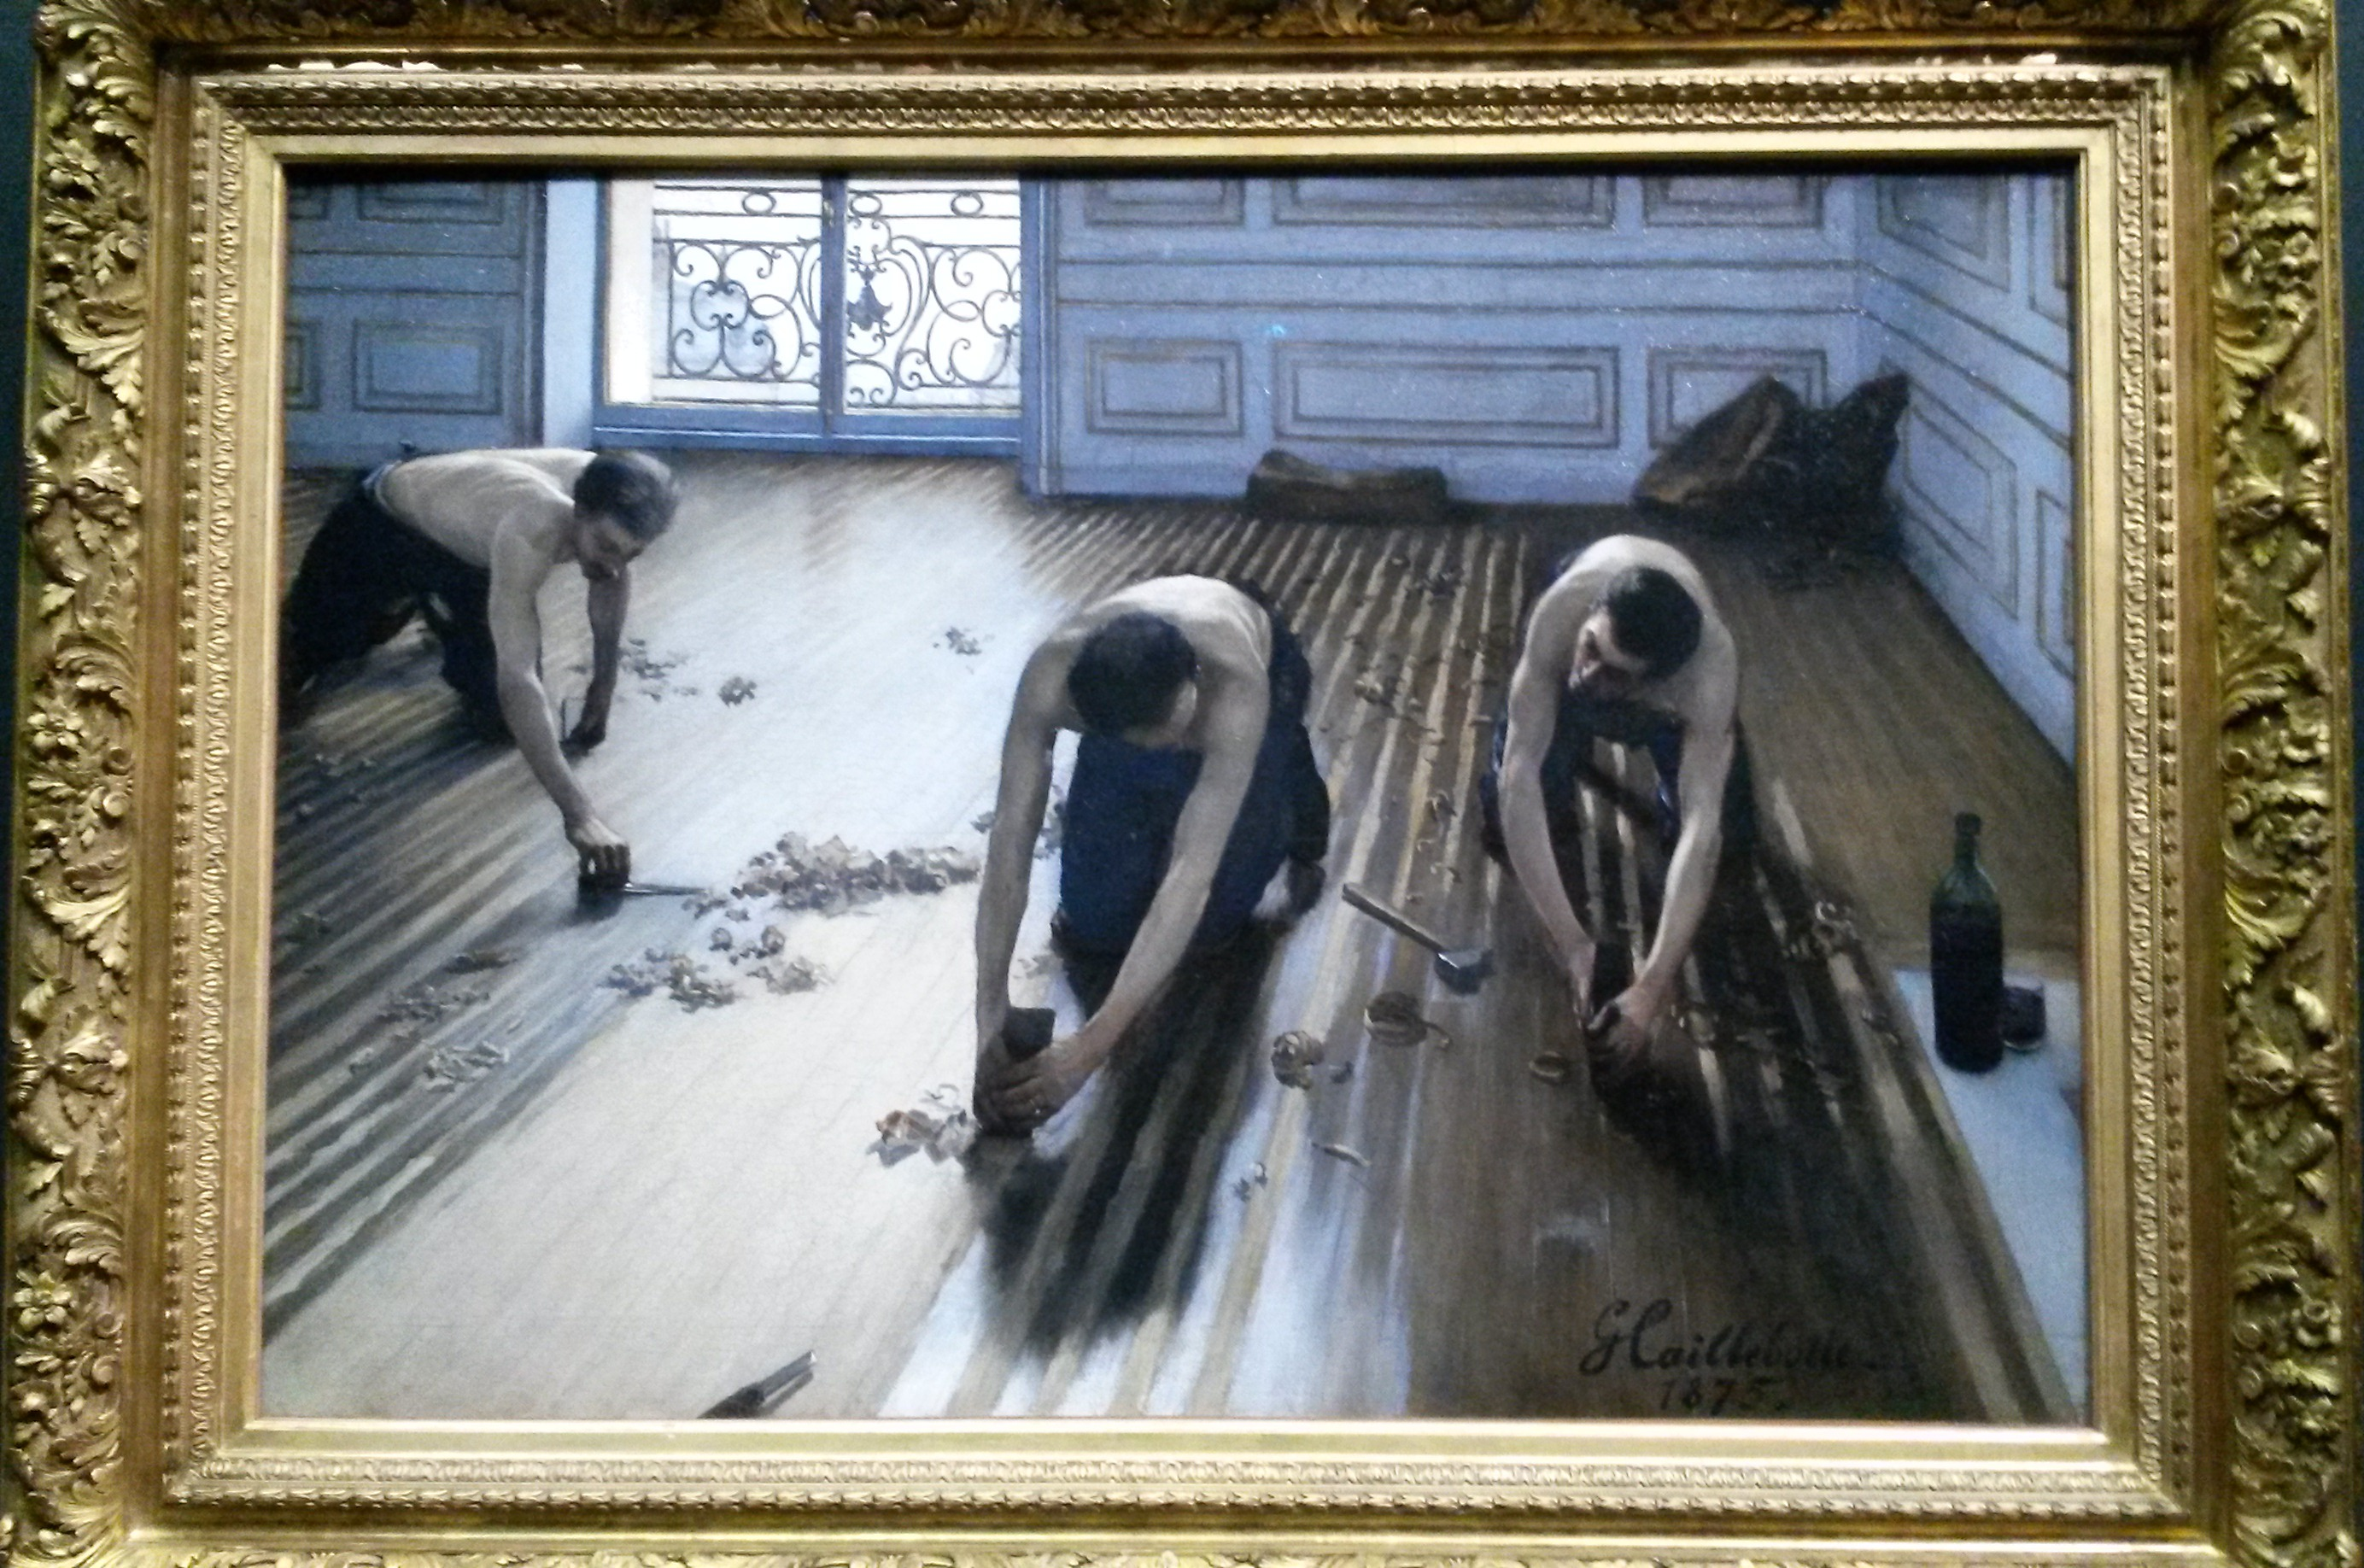 Top 15 best works from the musee dorsay pariscityvision for Gustave caillebotte les raboteurs de parquet